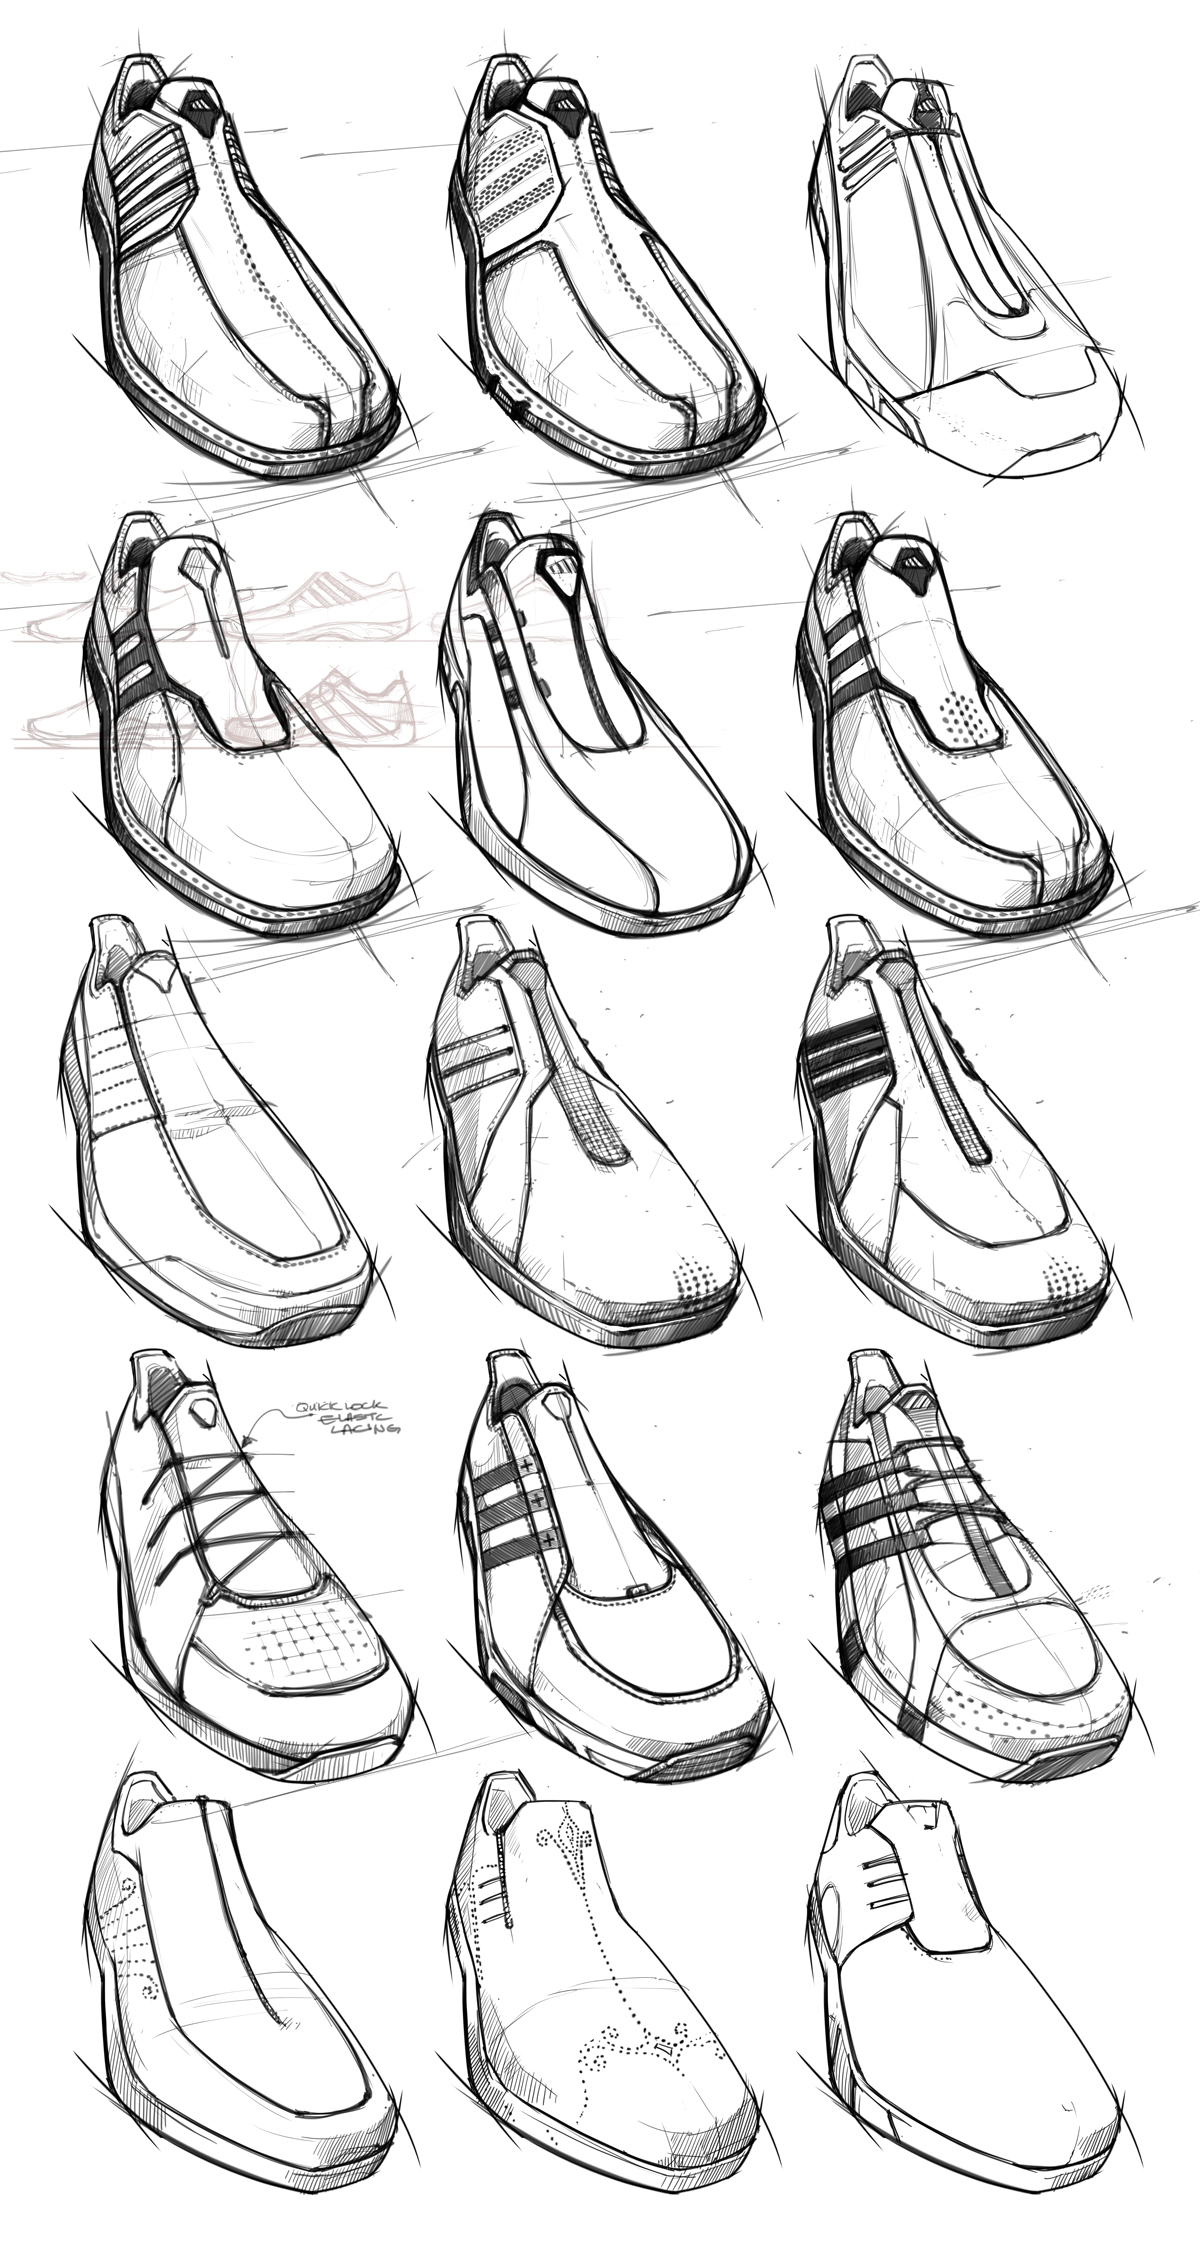 Preliminary sketches from a student in the Footwear Design class